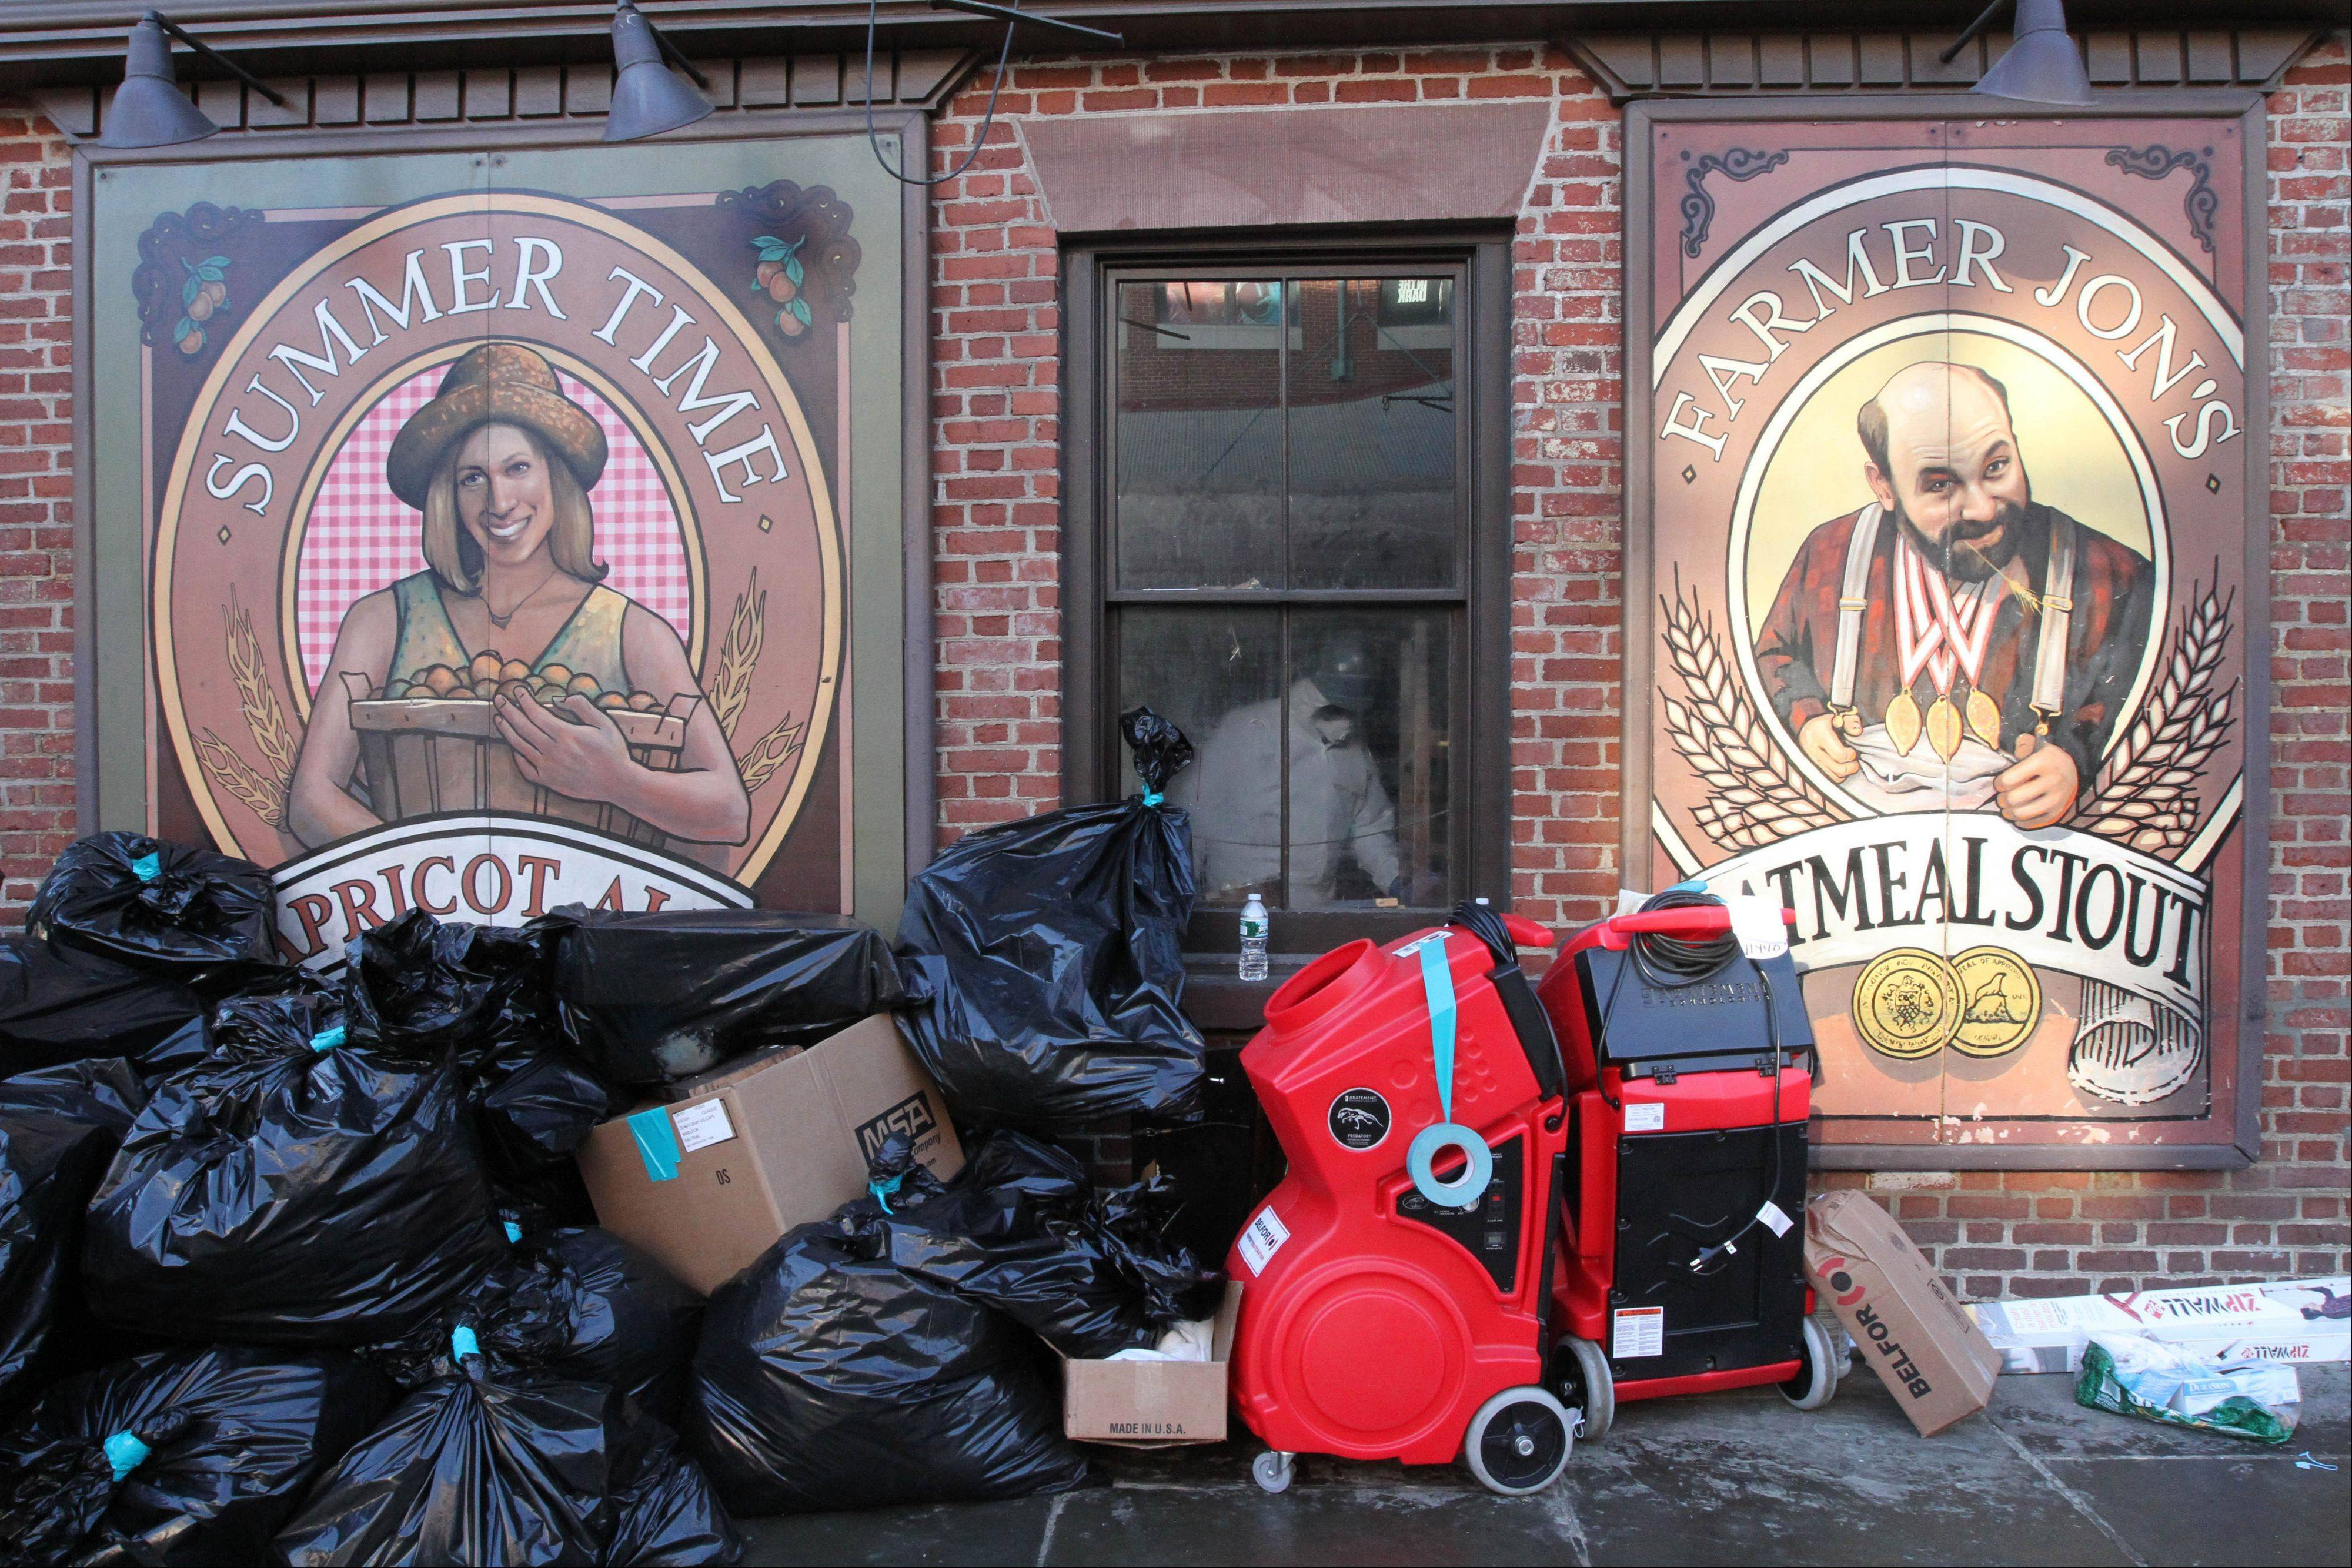 A worker wearing protective clothing, behind window, toils inside the Heartland Brewery at New York's South Street Seaport, as bags of garbage from the Superstorm Sandy cleanup sit out front. The South Street Seaport, a popular tourist destination, remains a ghost town since the storm.